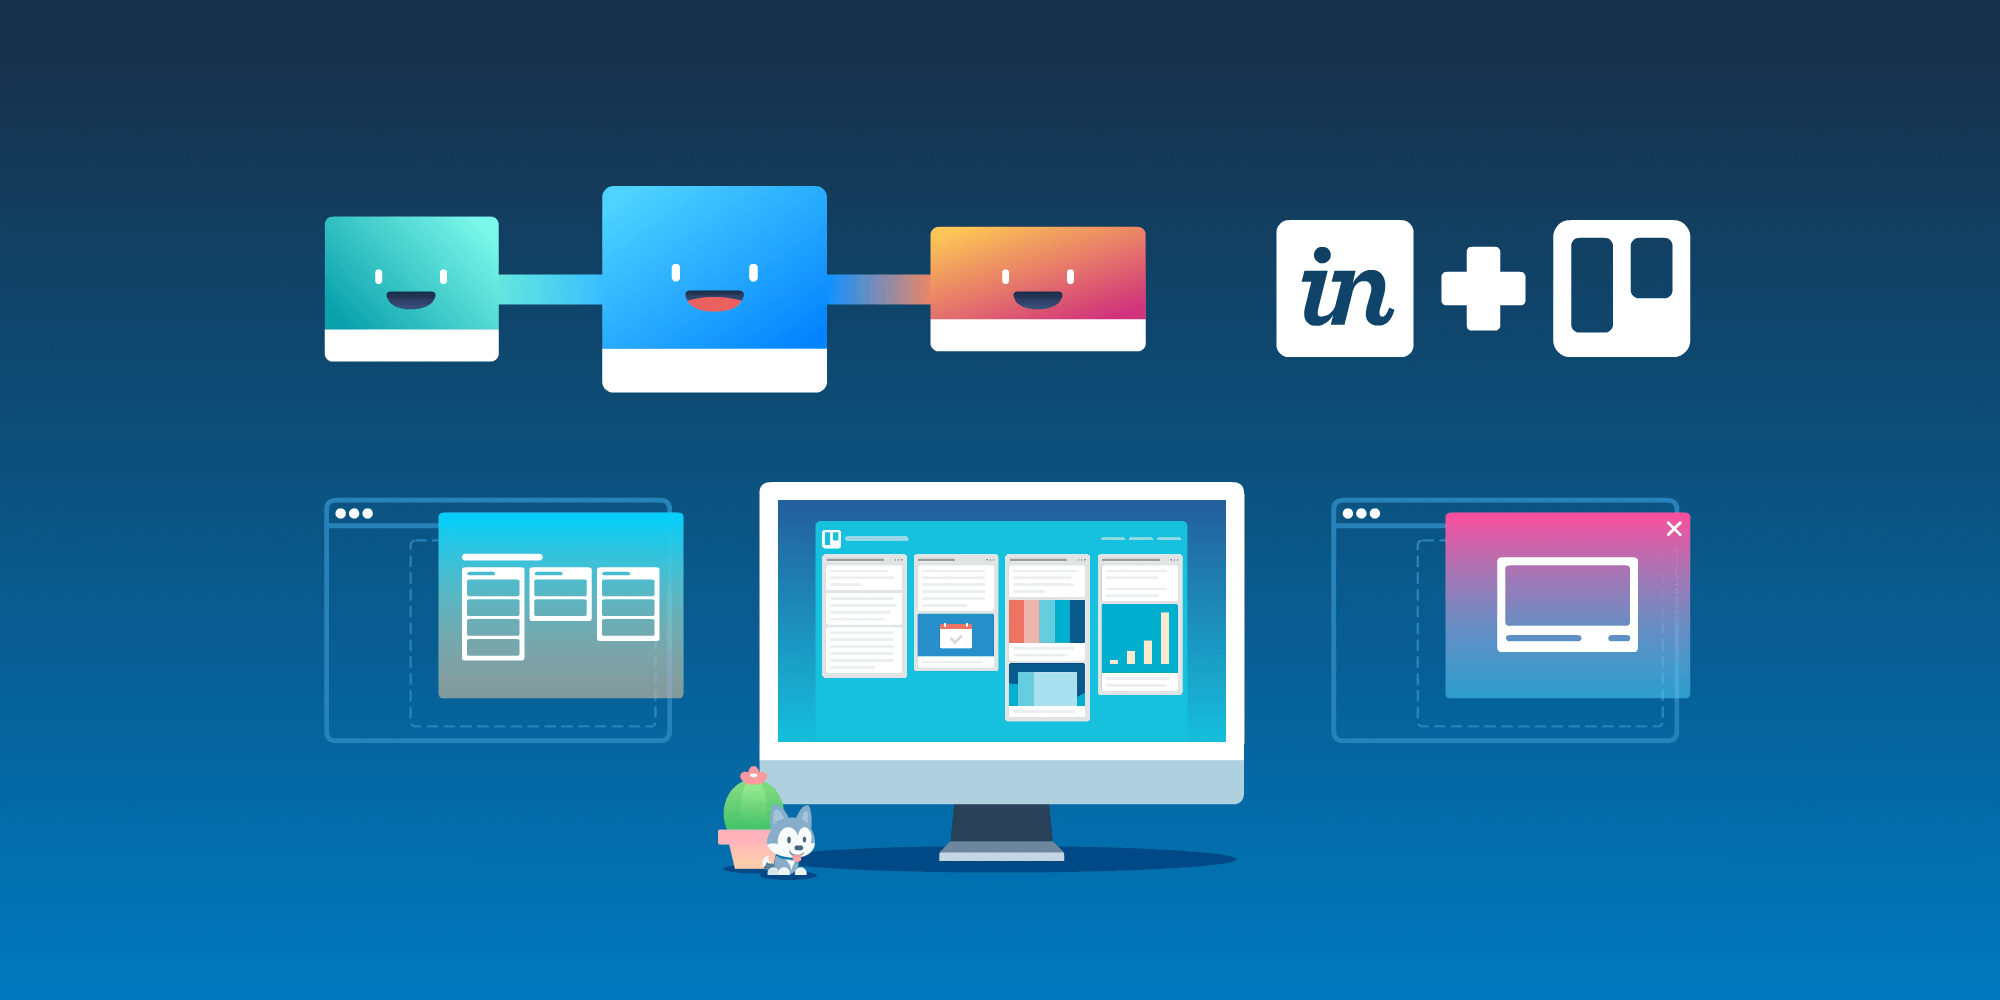 25 Million! Celebrate With 4 New Top-Requested Trello Features